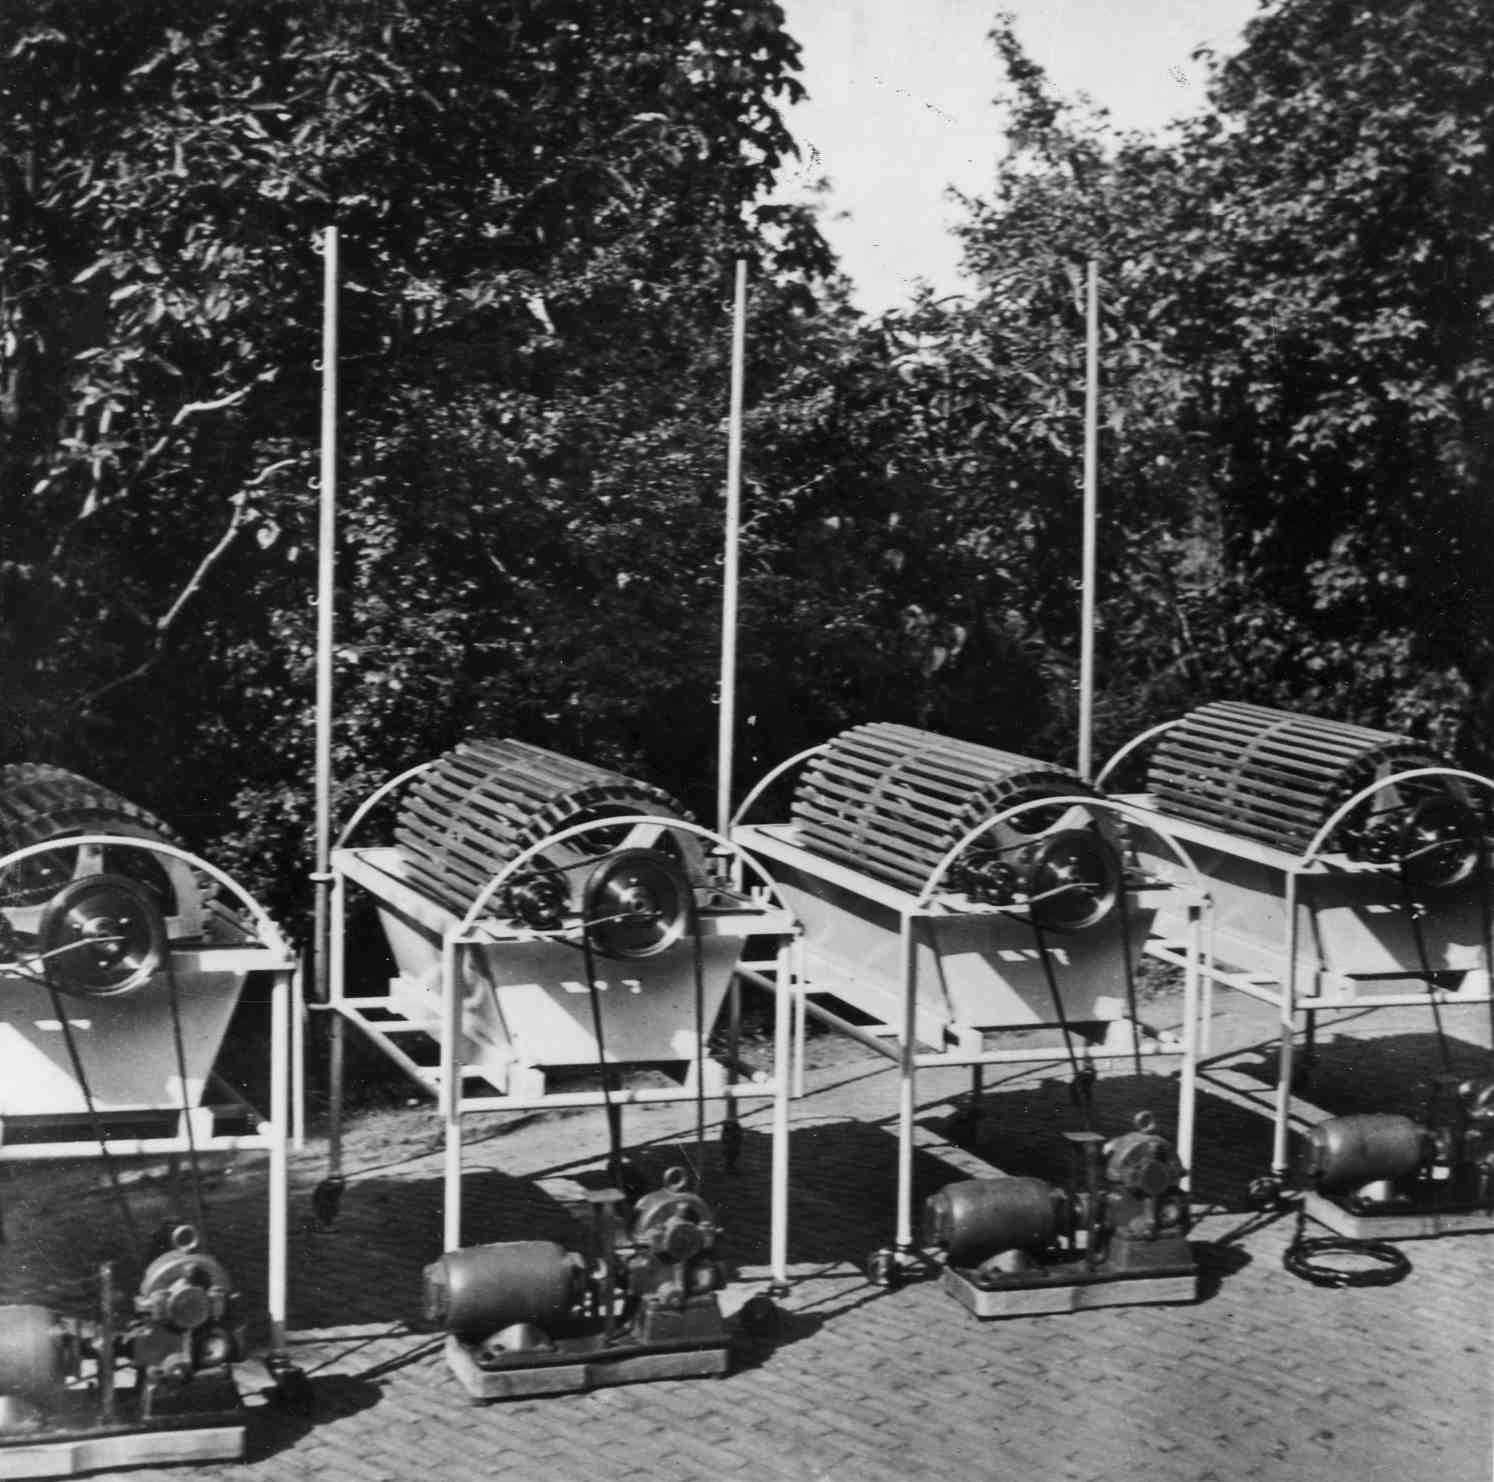 Four rotating drum kidneys made during the war and during German occupations in the Netherlands. Taken in garden of the hospital in Kampen. During the war they were hidden in different places to keep them from being destroyed.